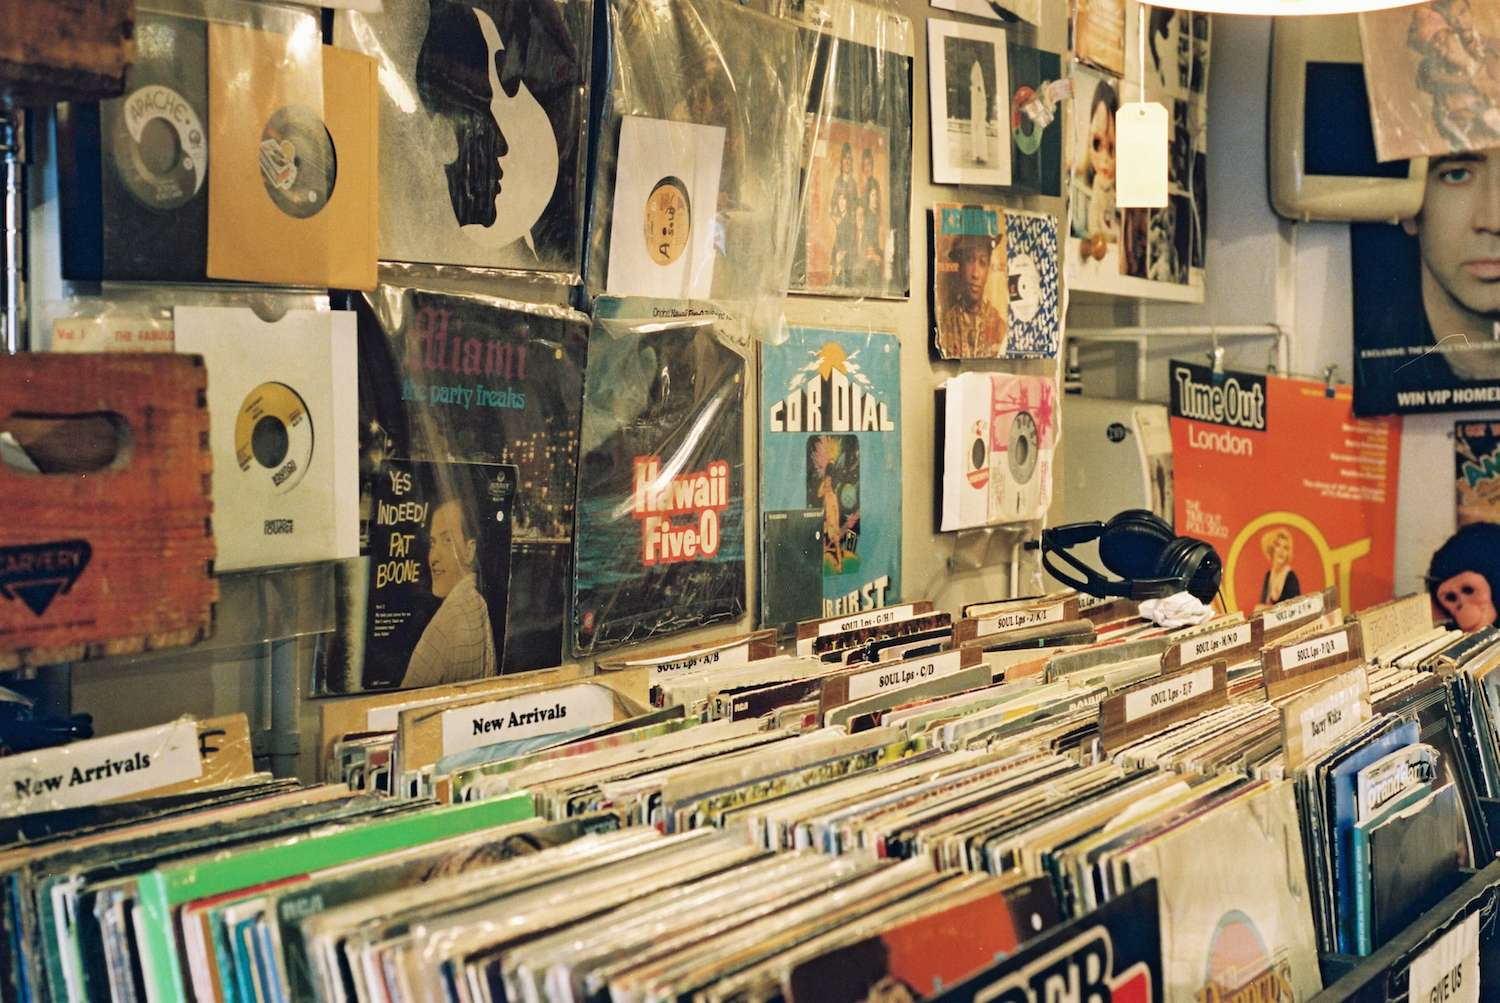 Eldica Remains How This London Record Shop Held Its Own